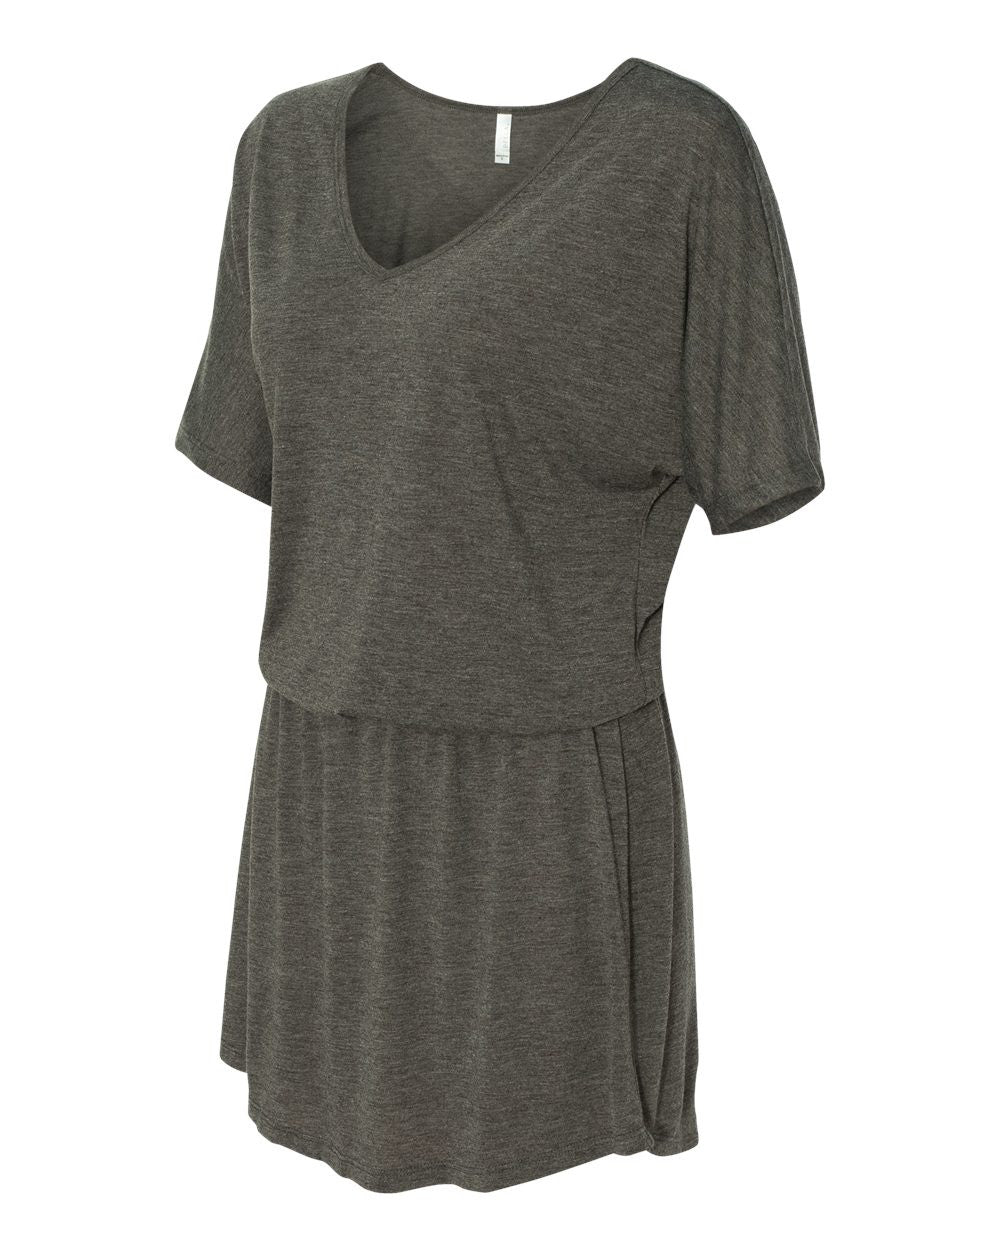 V neck Dress by Bella + Canvas - Discountedrack.com